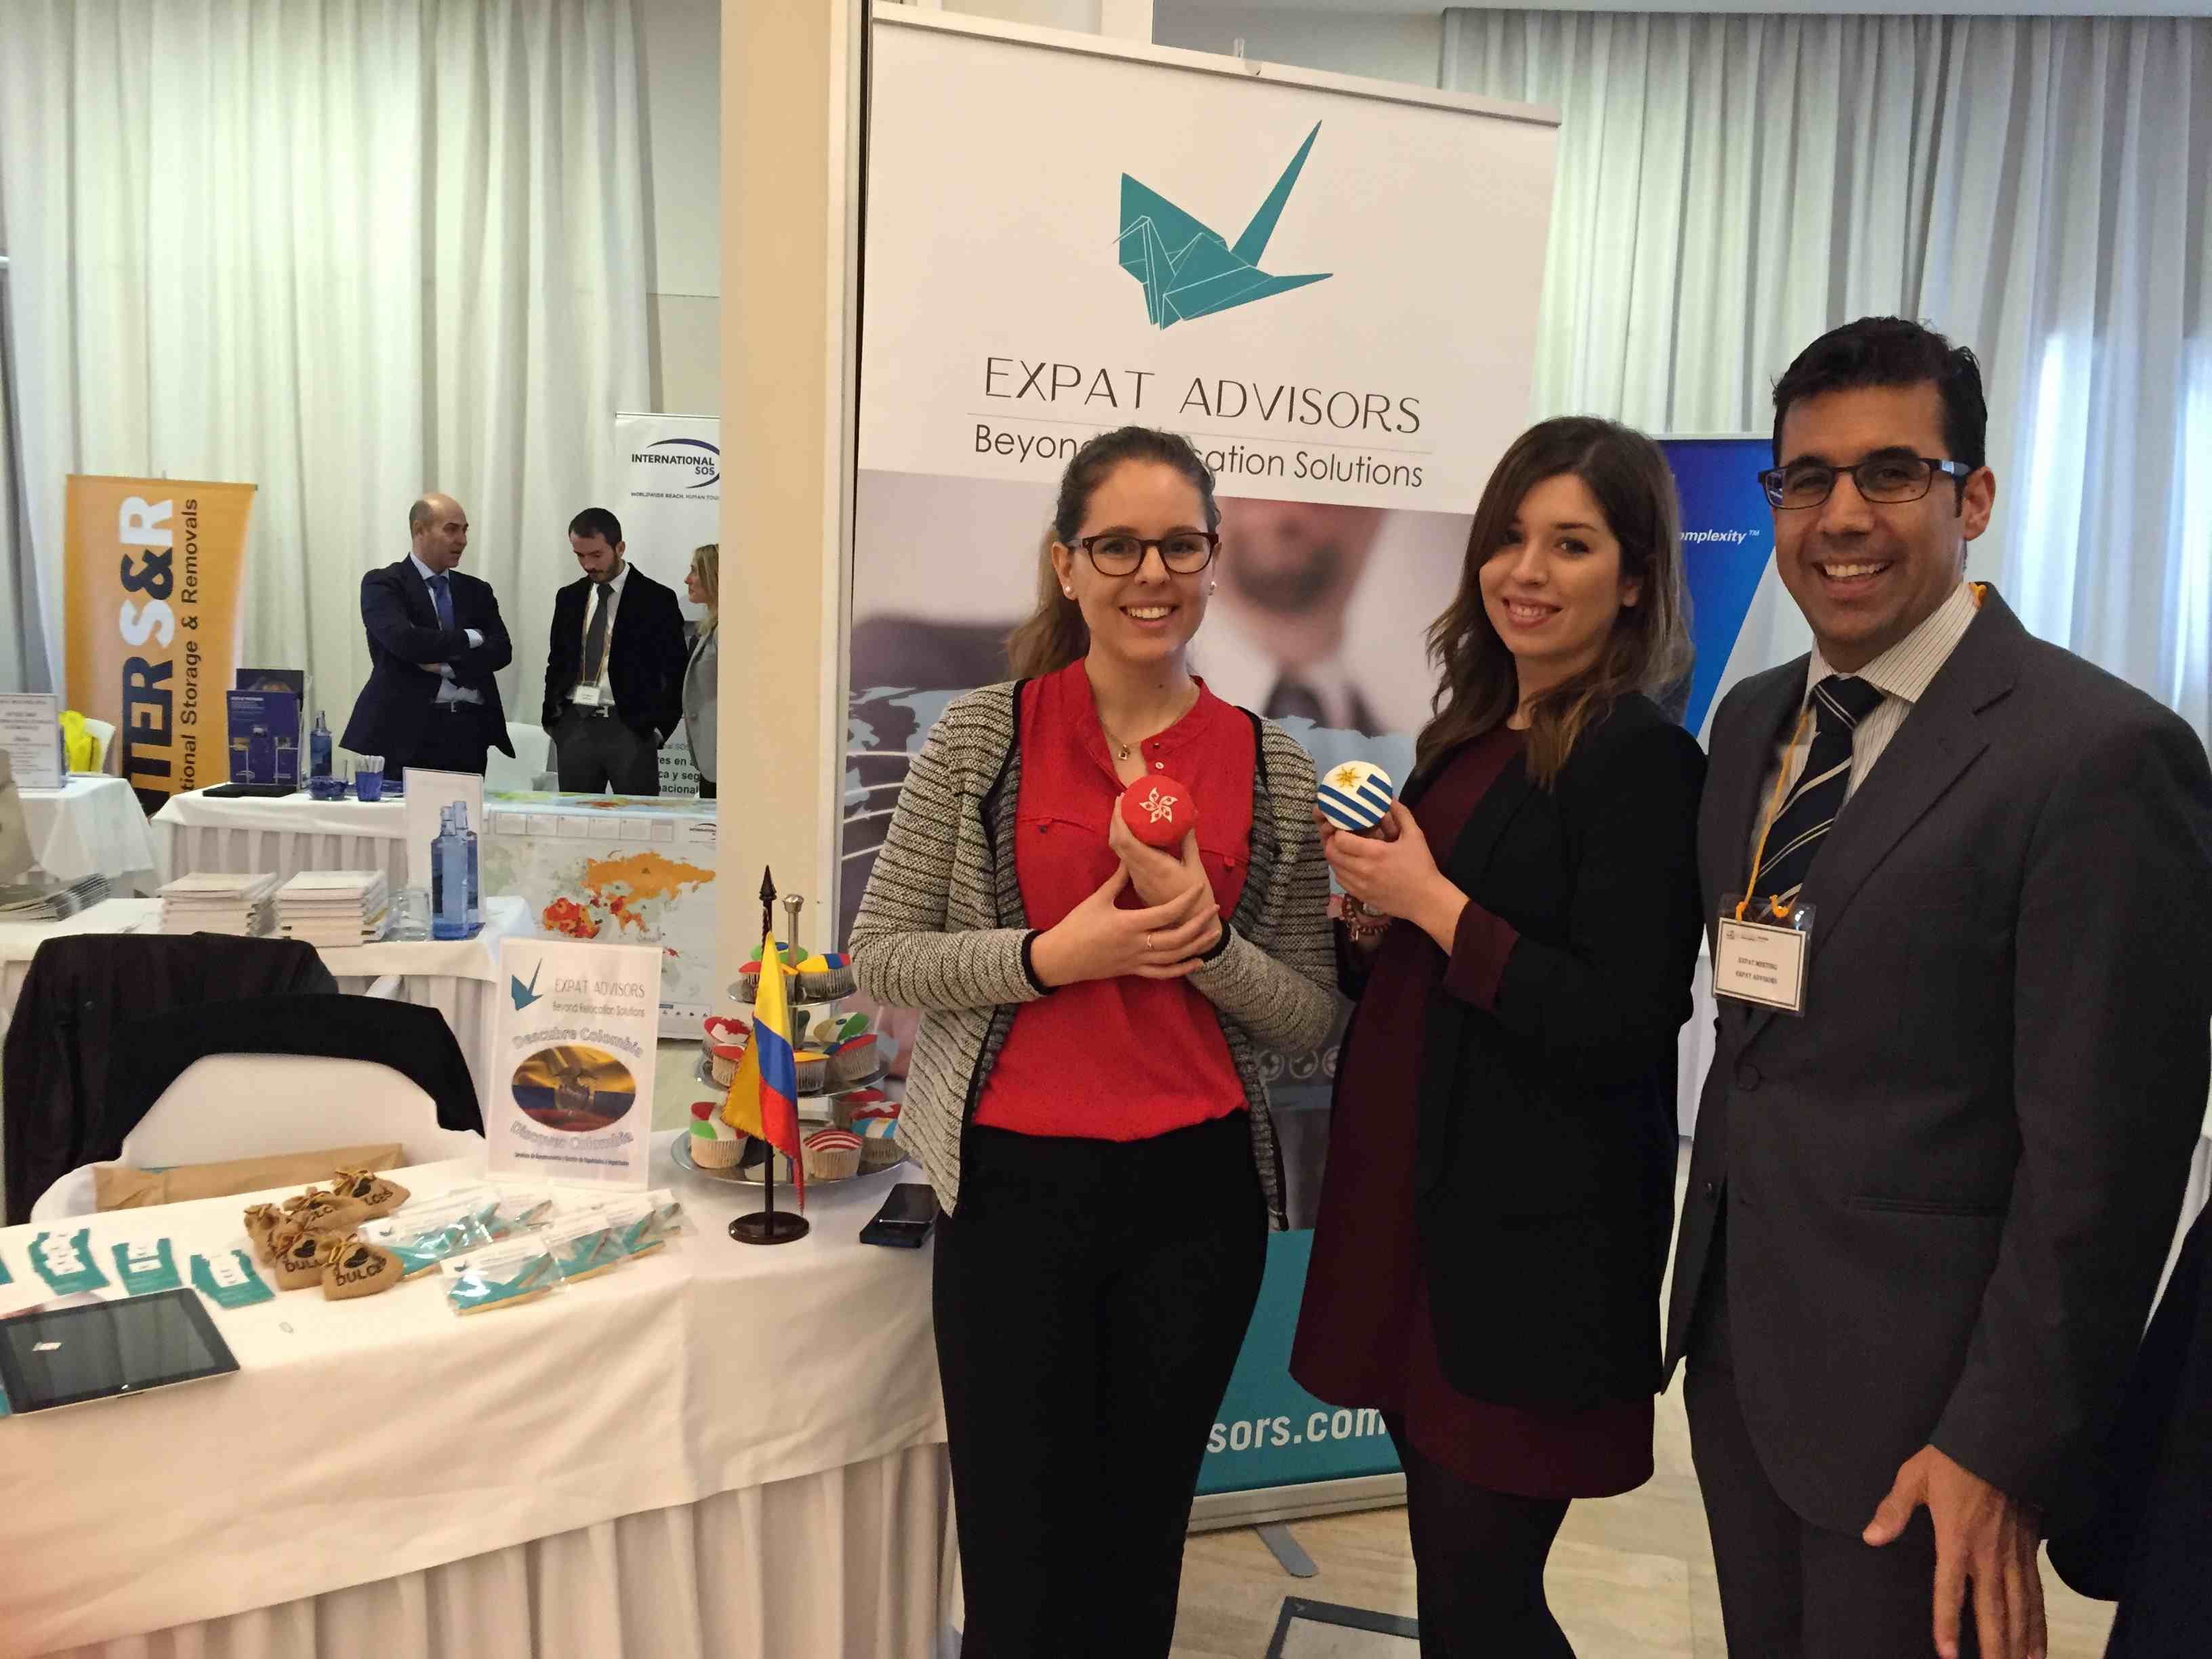 V-Feria-Expat-Meeting-2016-5